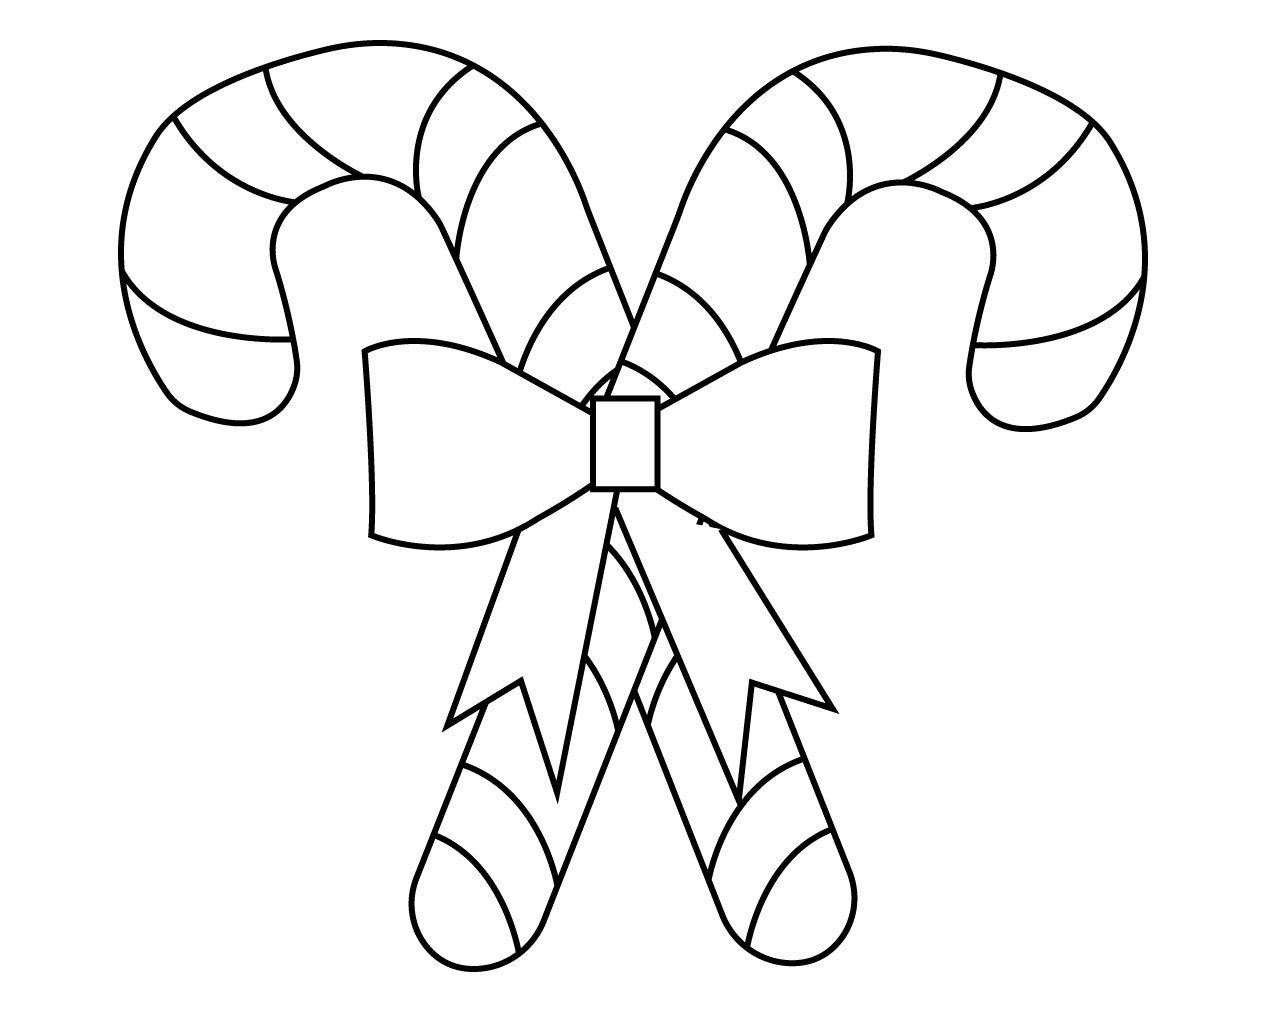 Candy Cane Coloring Pages For Kids